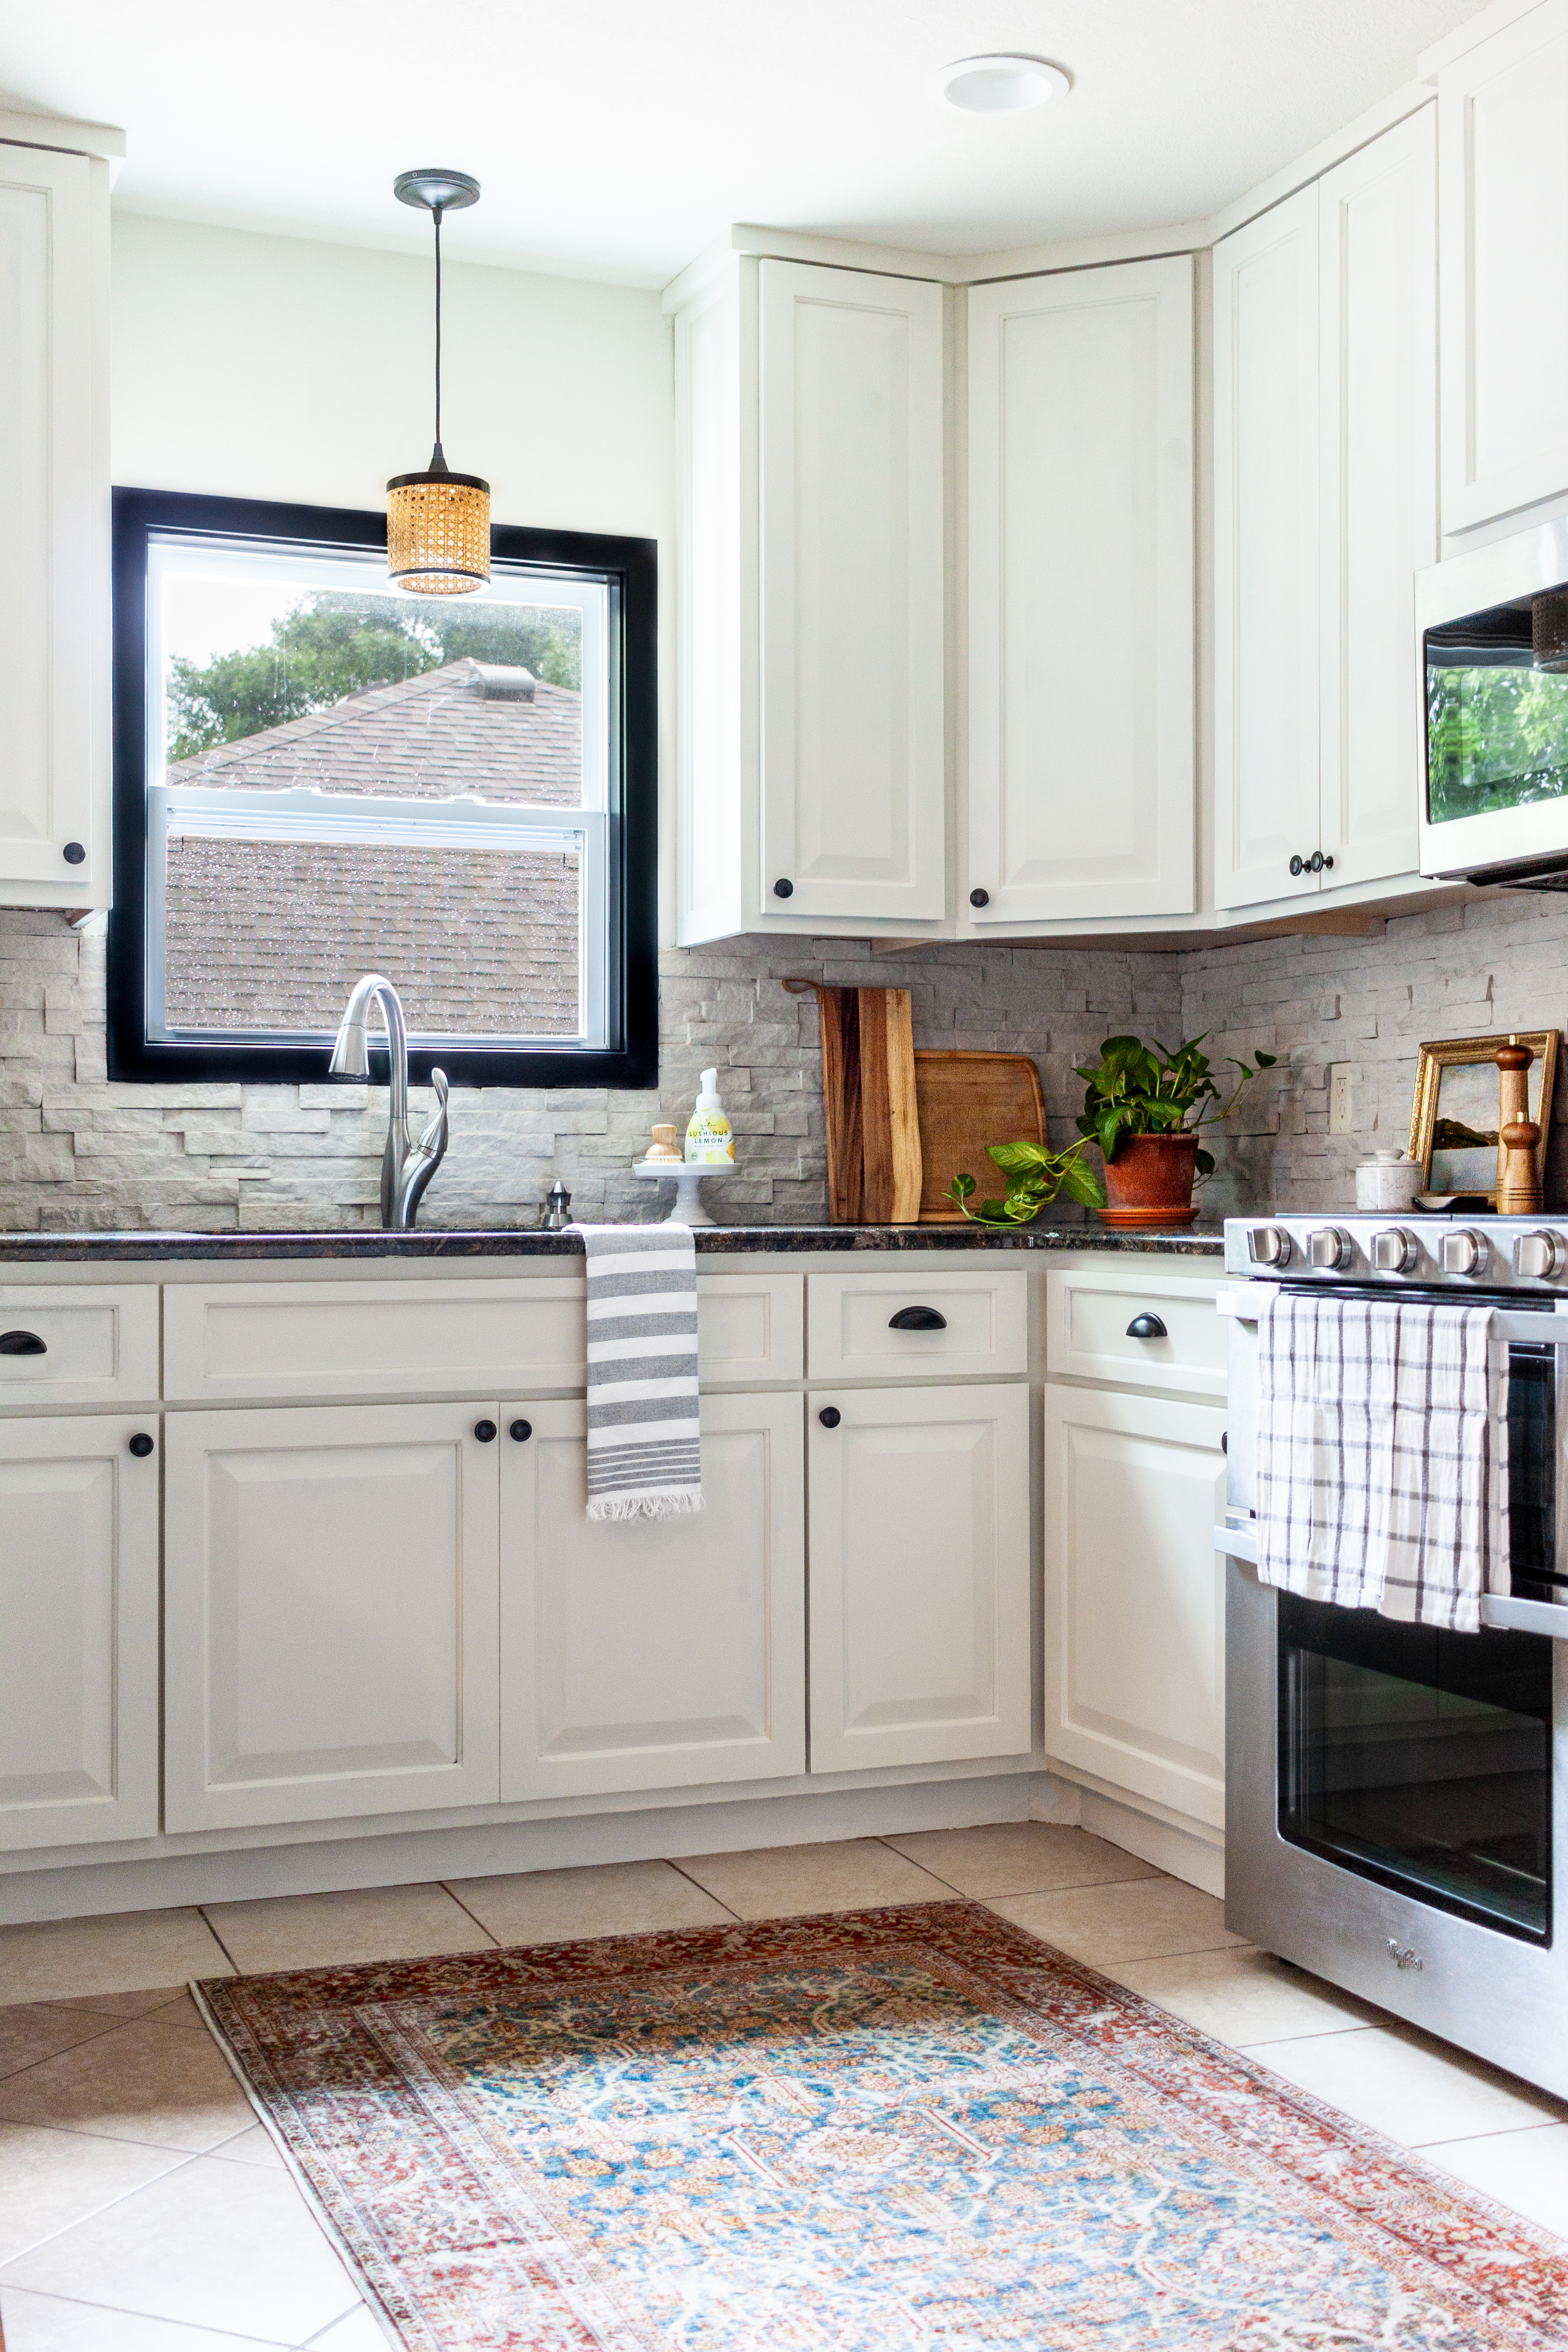 Briee Sink and Stove